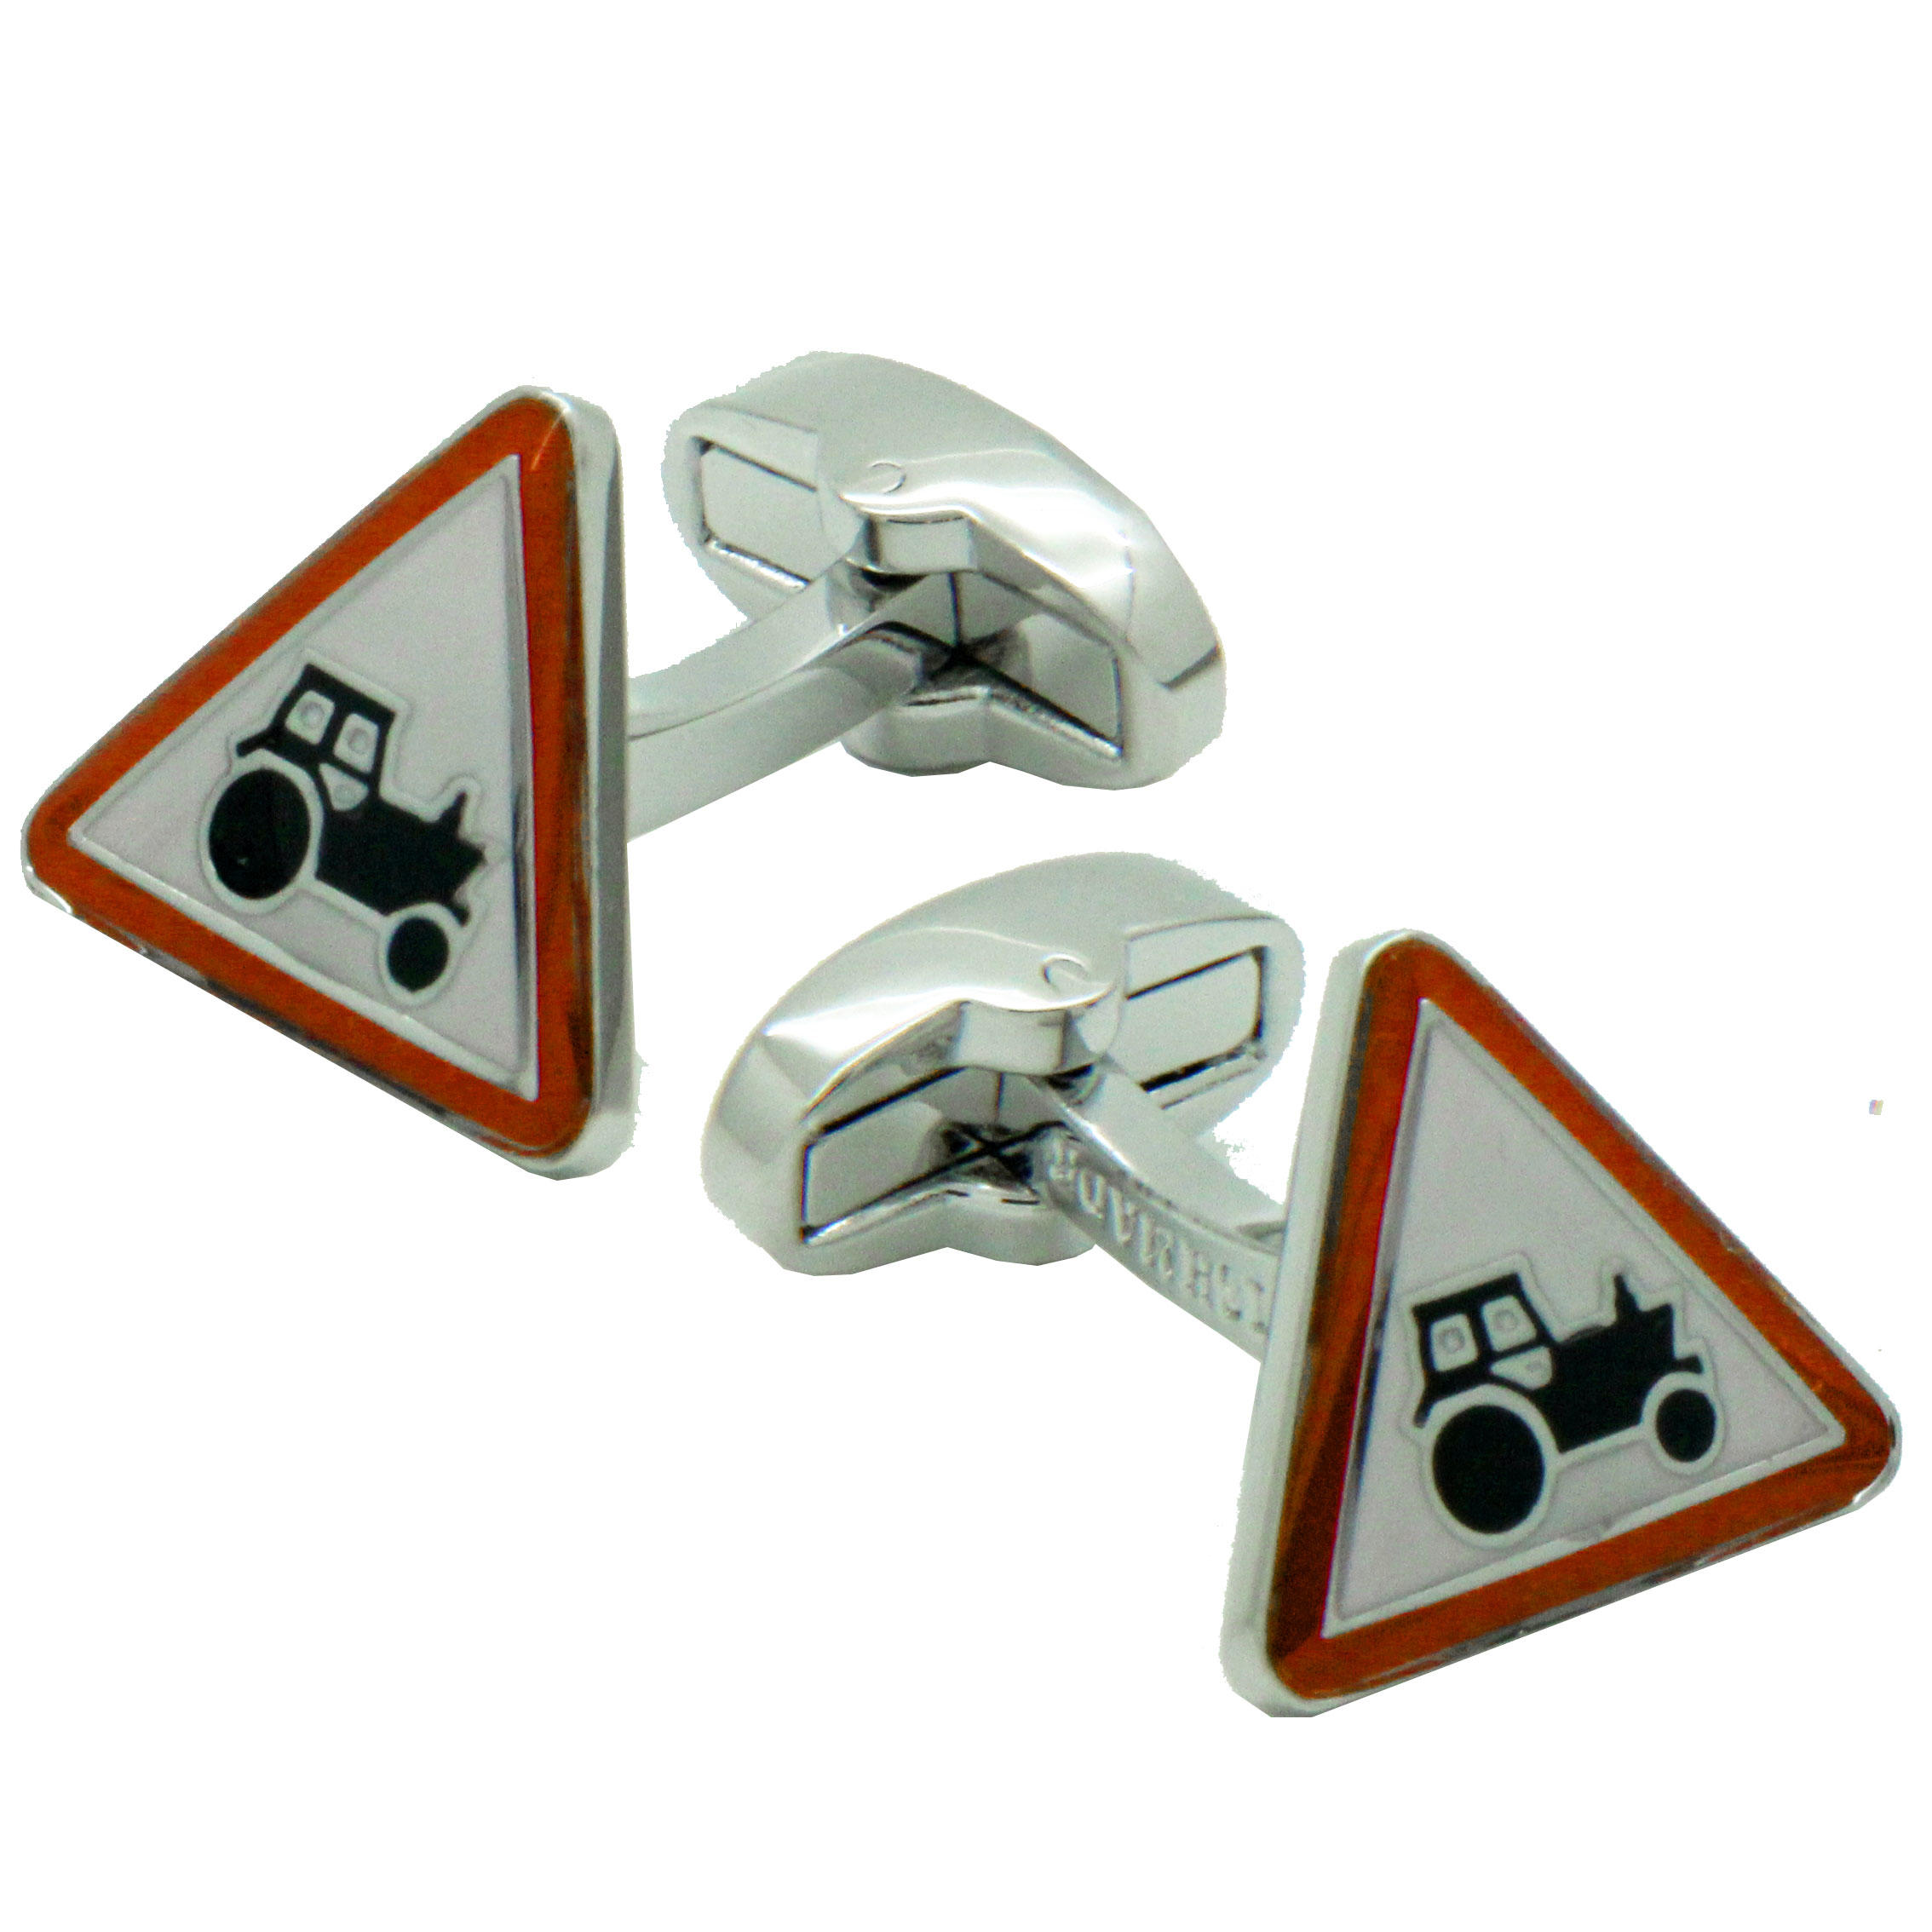 Farm Tractor Sign Cufflinks from Cuffs & Co